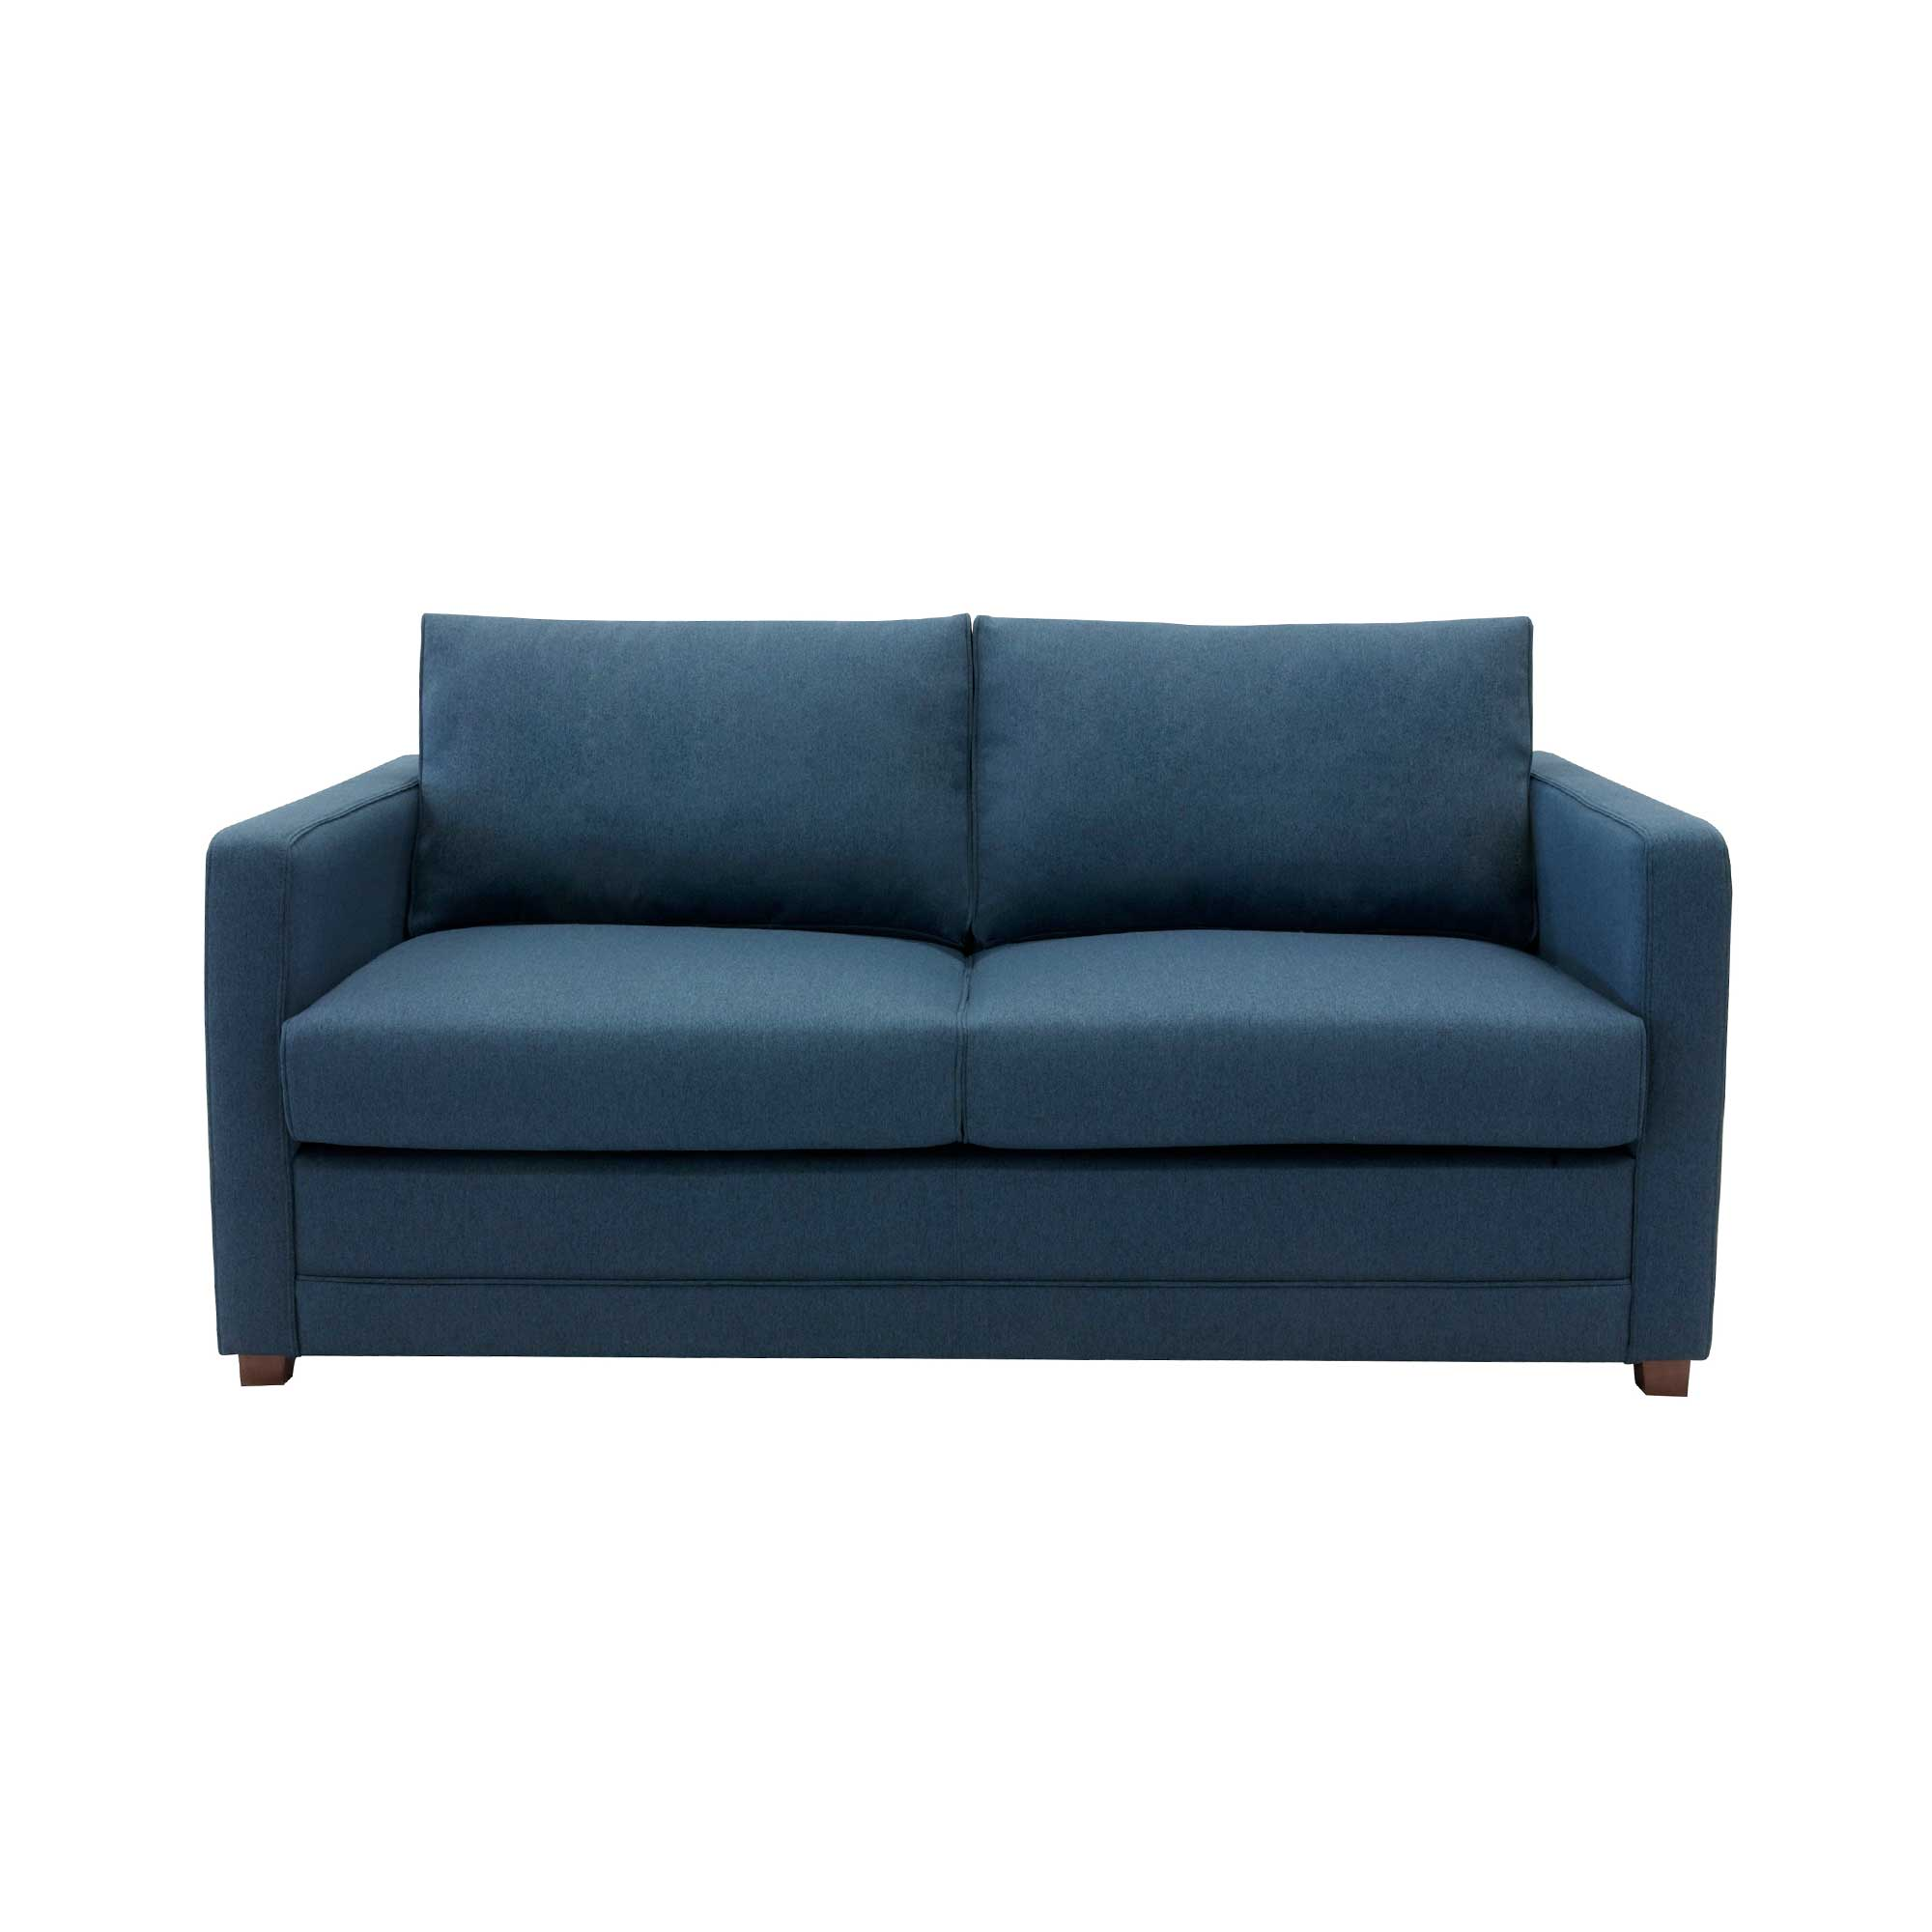 Myer Furniture Sofa Beds